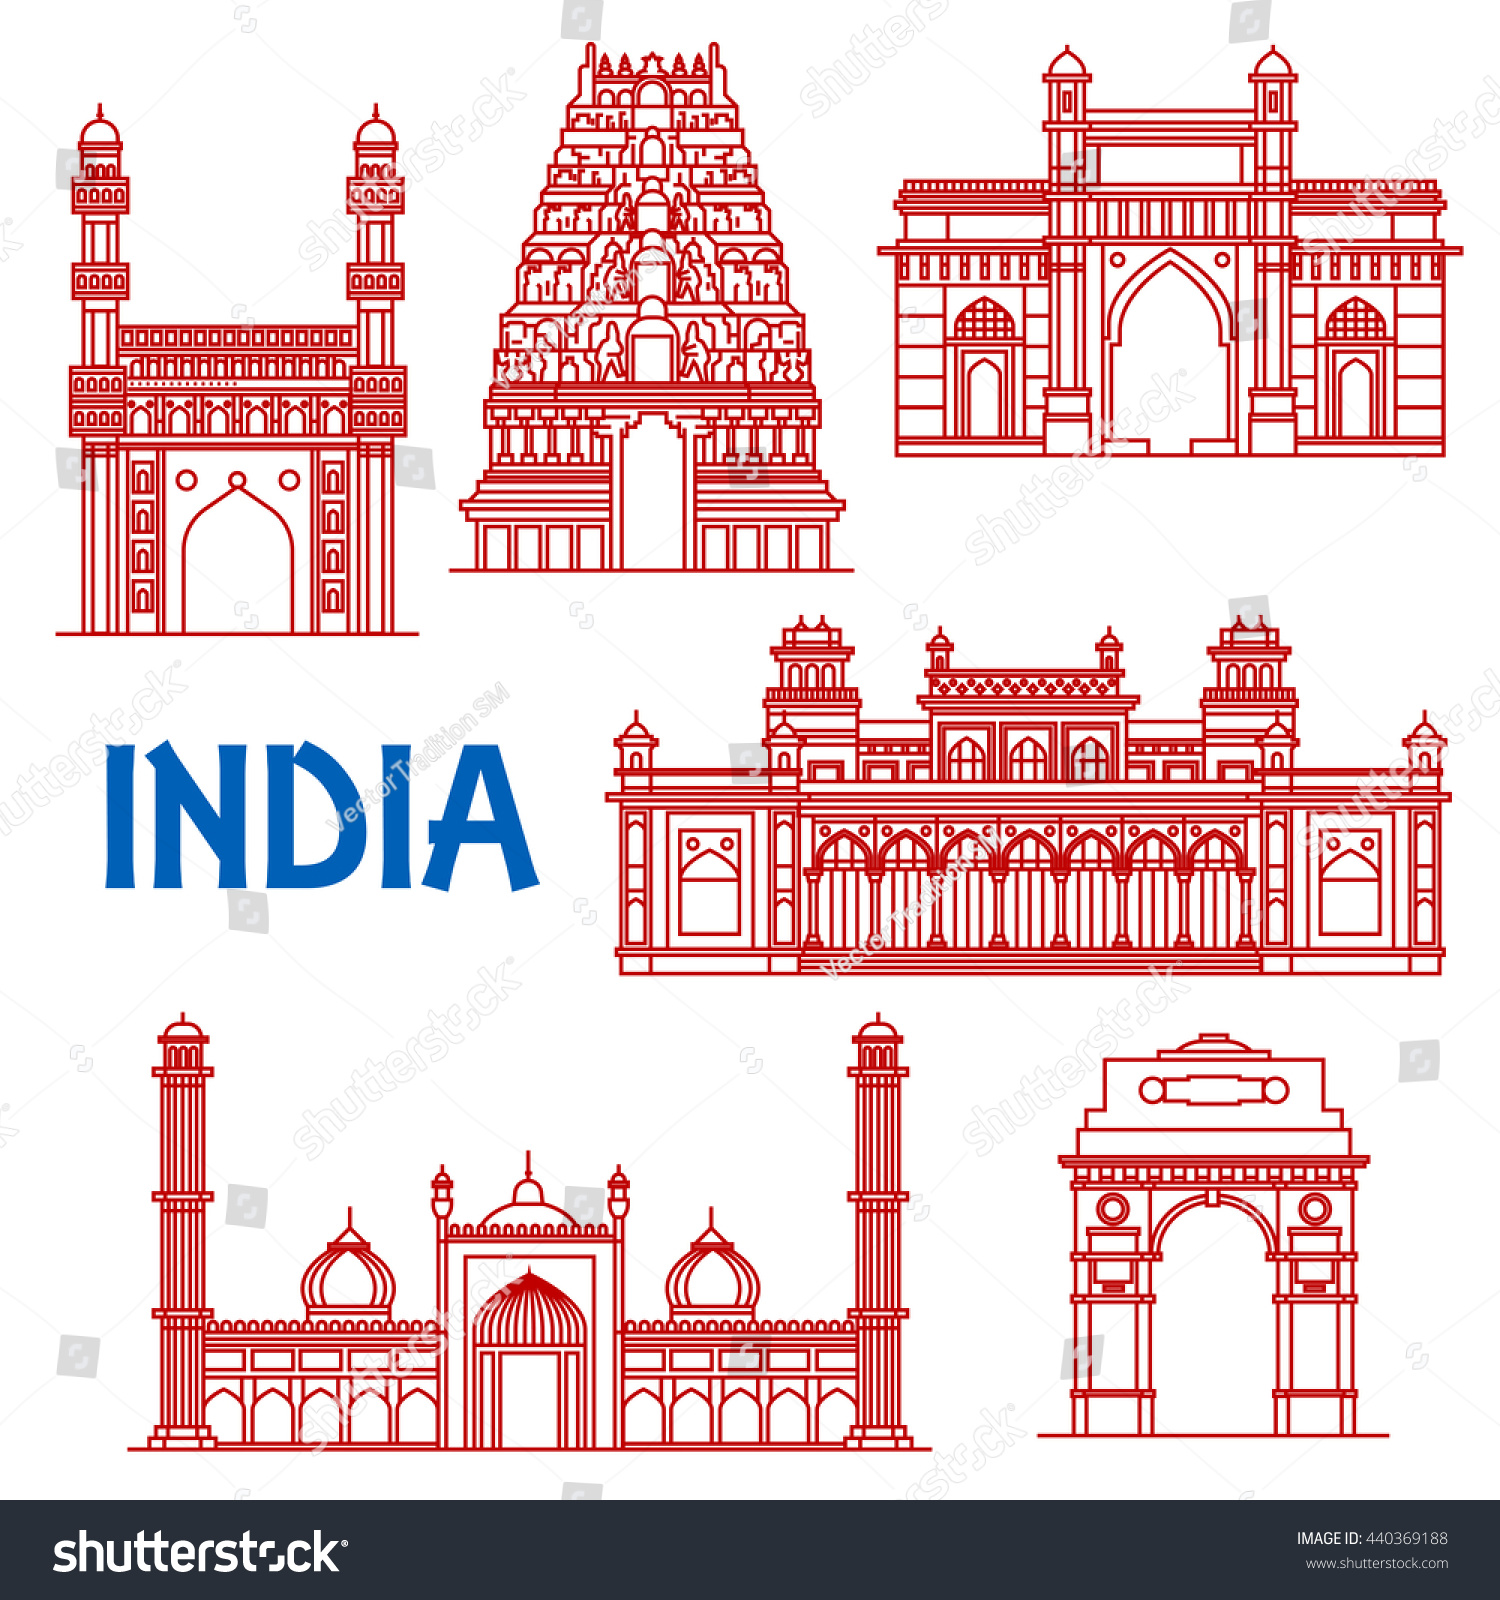 Popular Indian Architecture Landmarks Icon With Red Thin